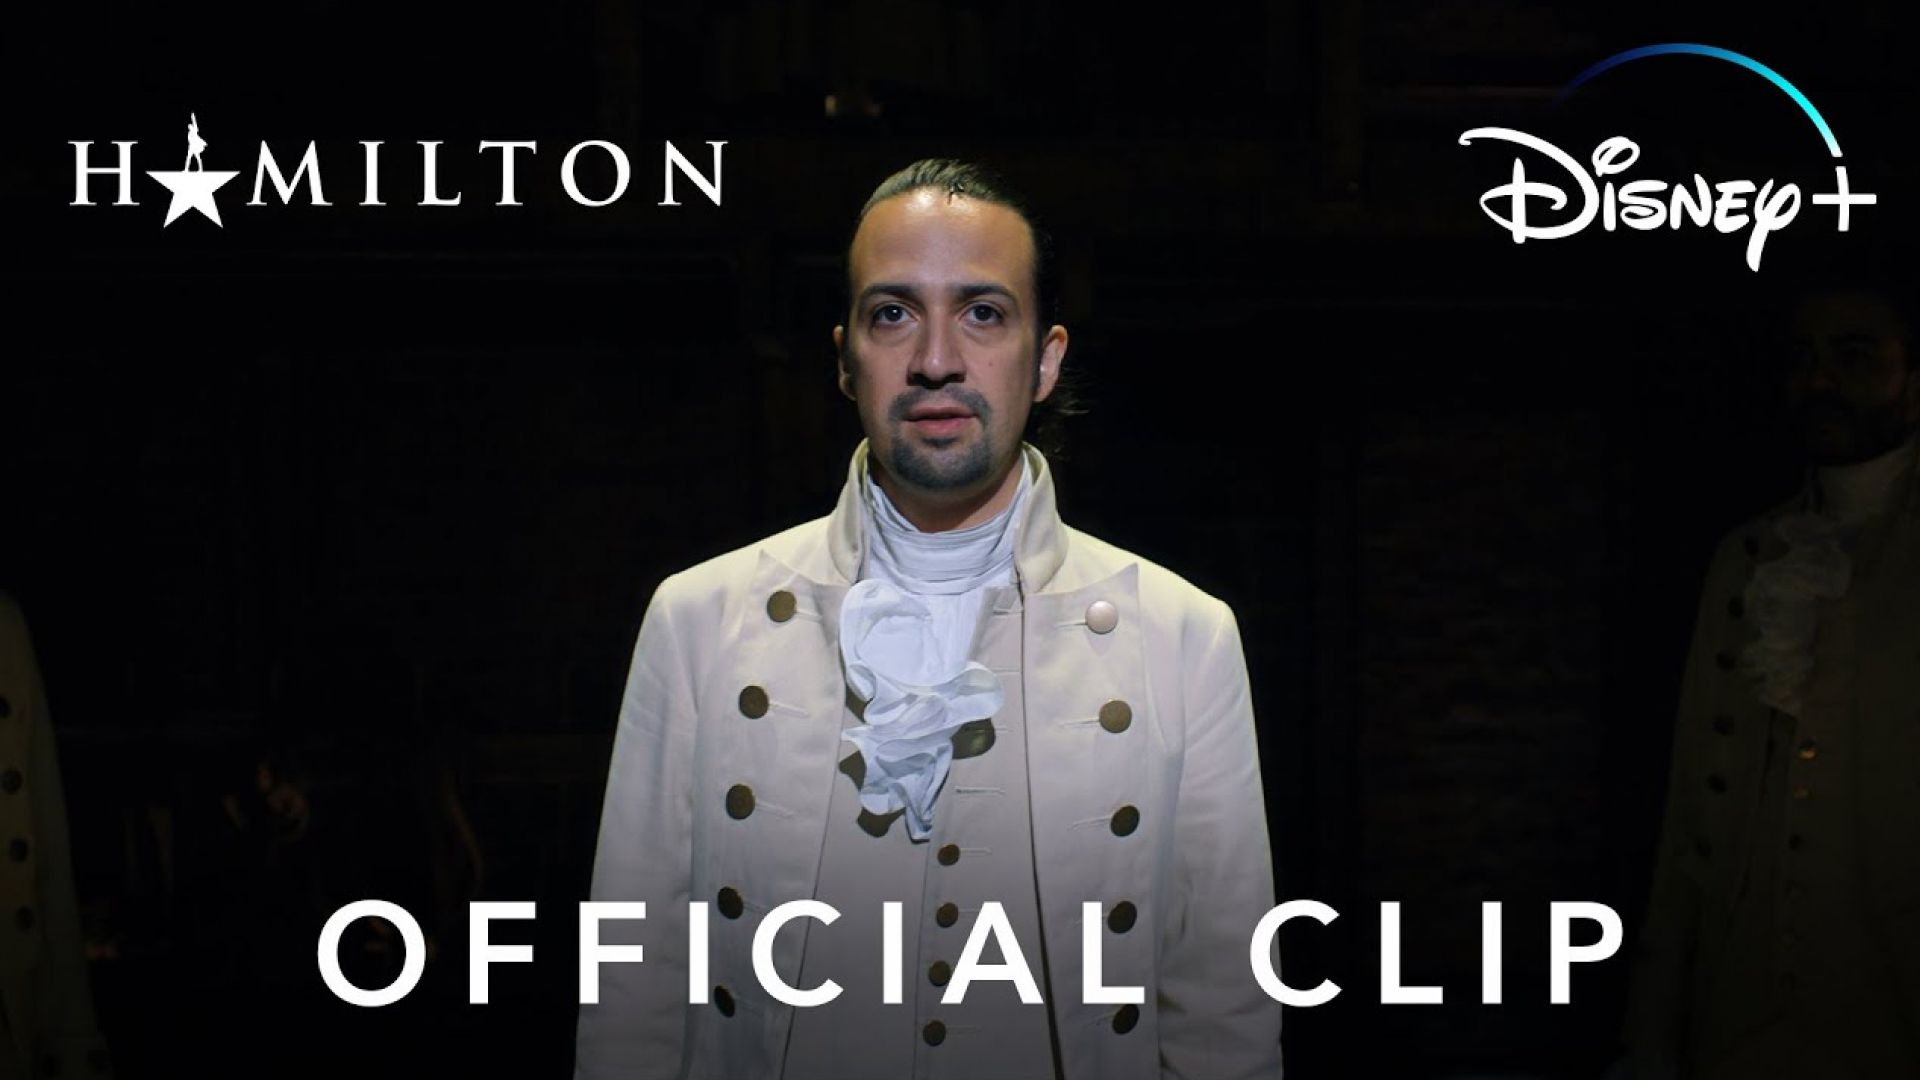 'Hamilton' Clip - July 3, Disney+